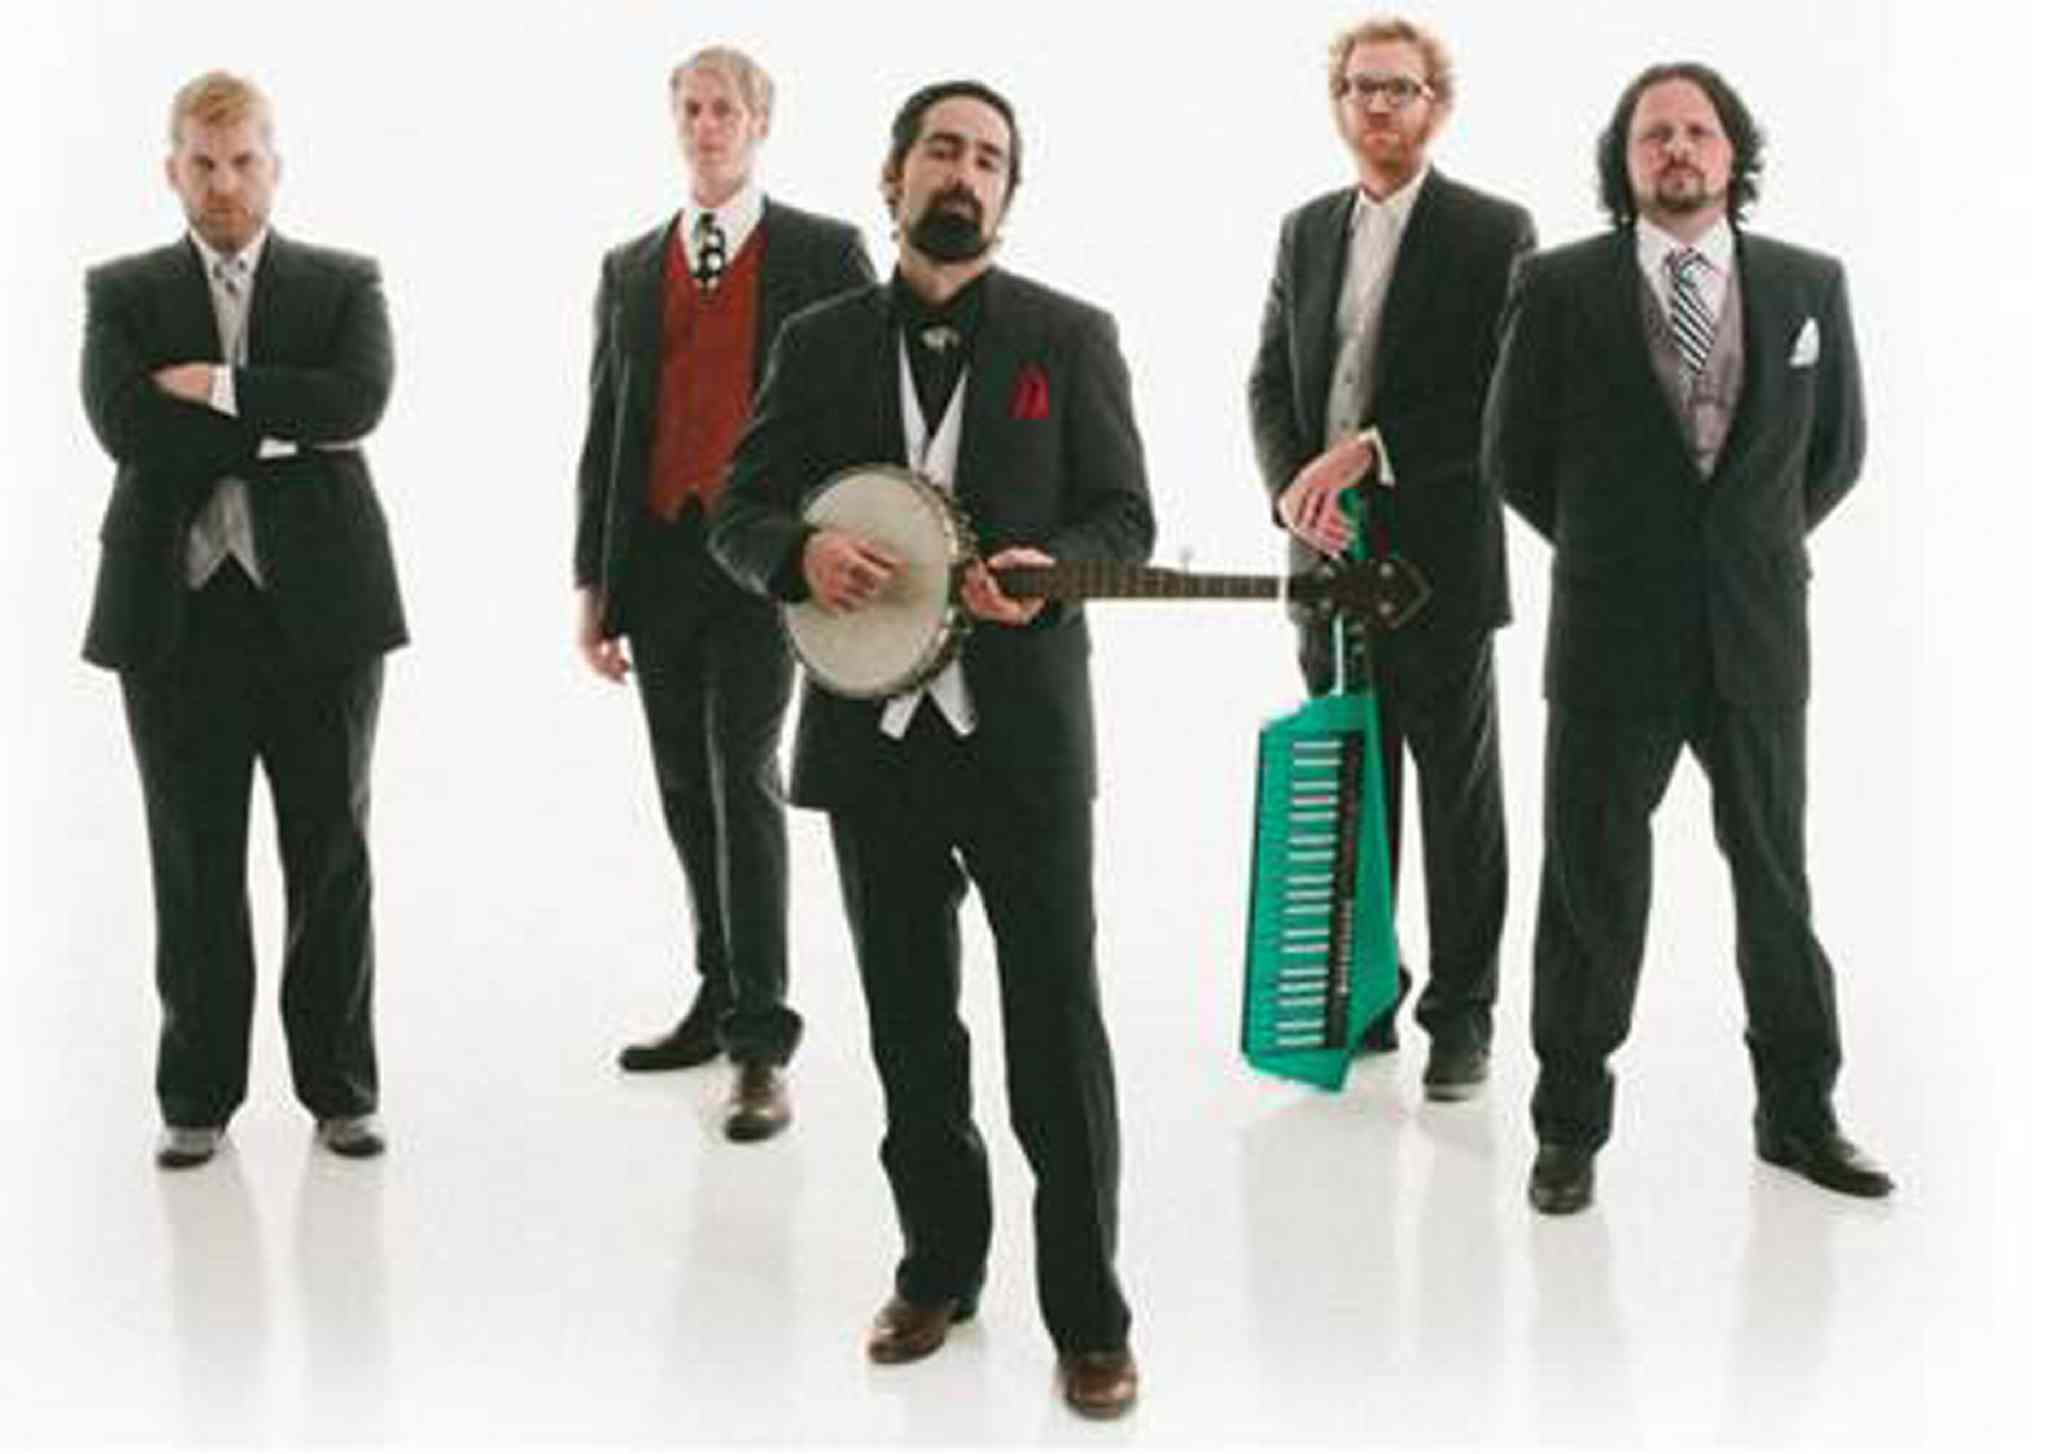 Blitzen Trapper is touring in support of its 2013 album, VII, their seventh album.